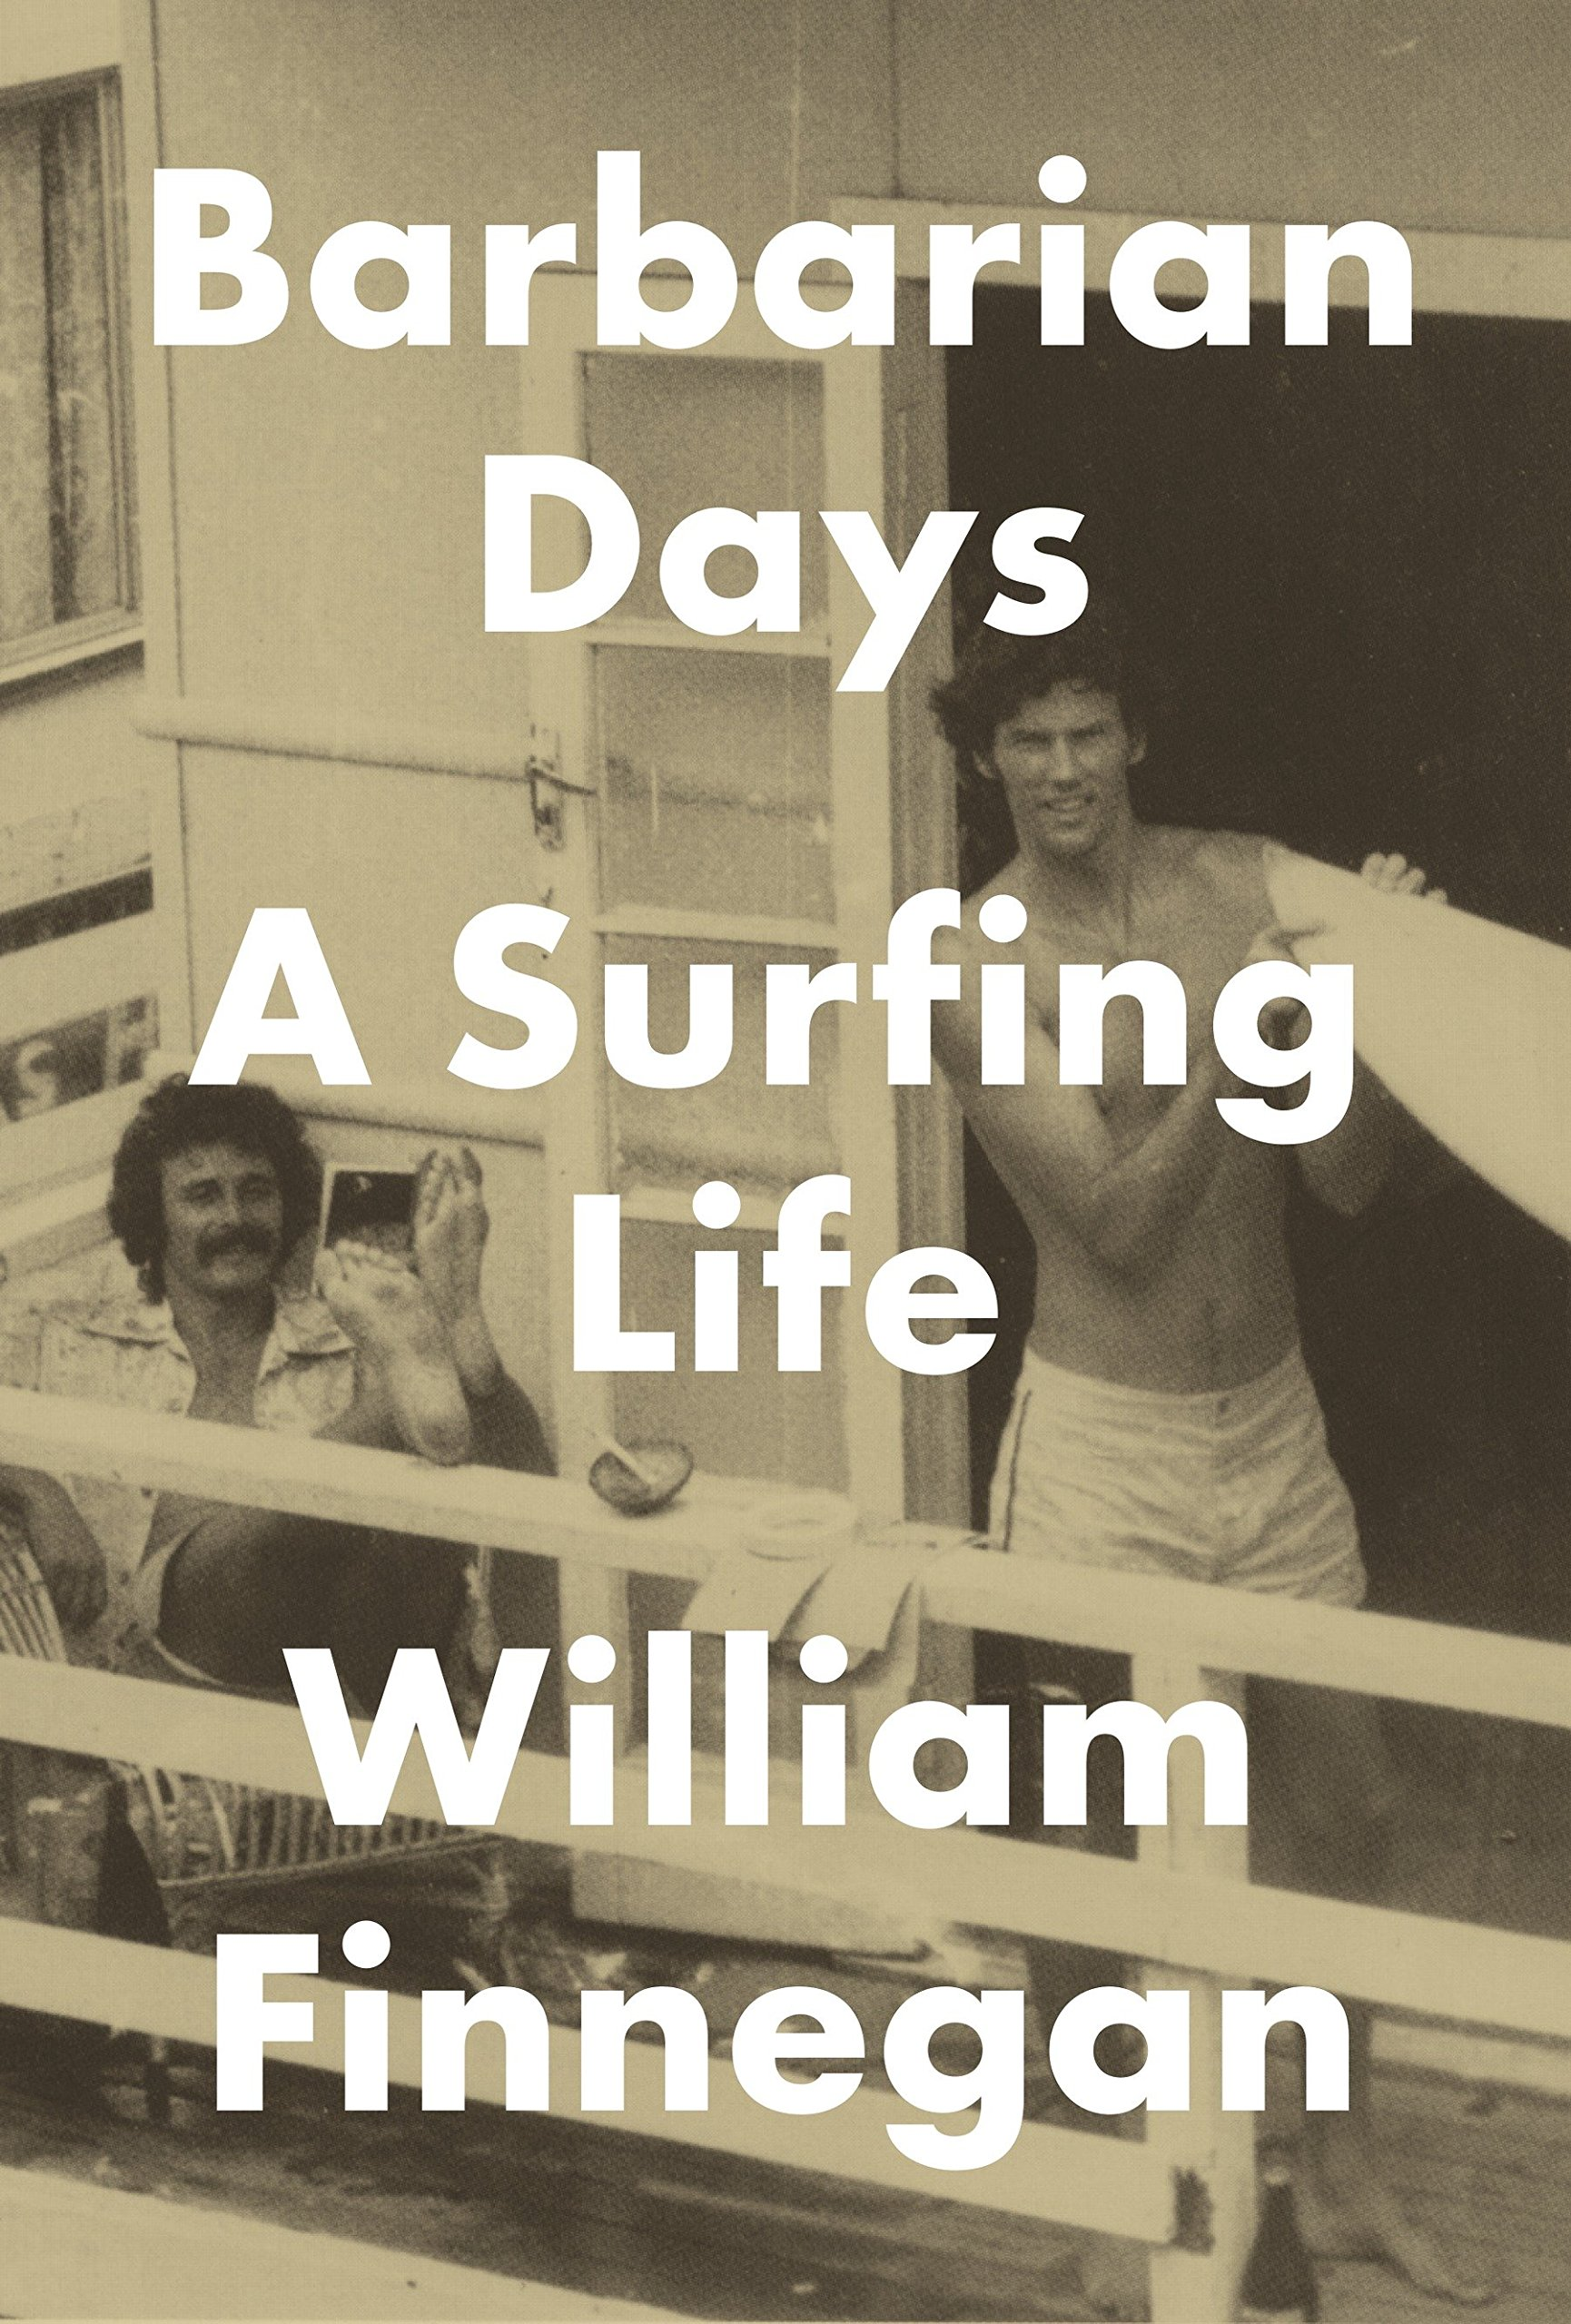 Barbarian Days: A Surfing Life by Penguin Press